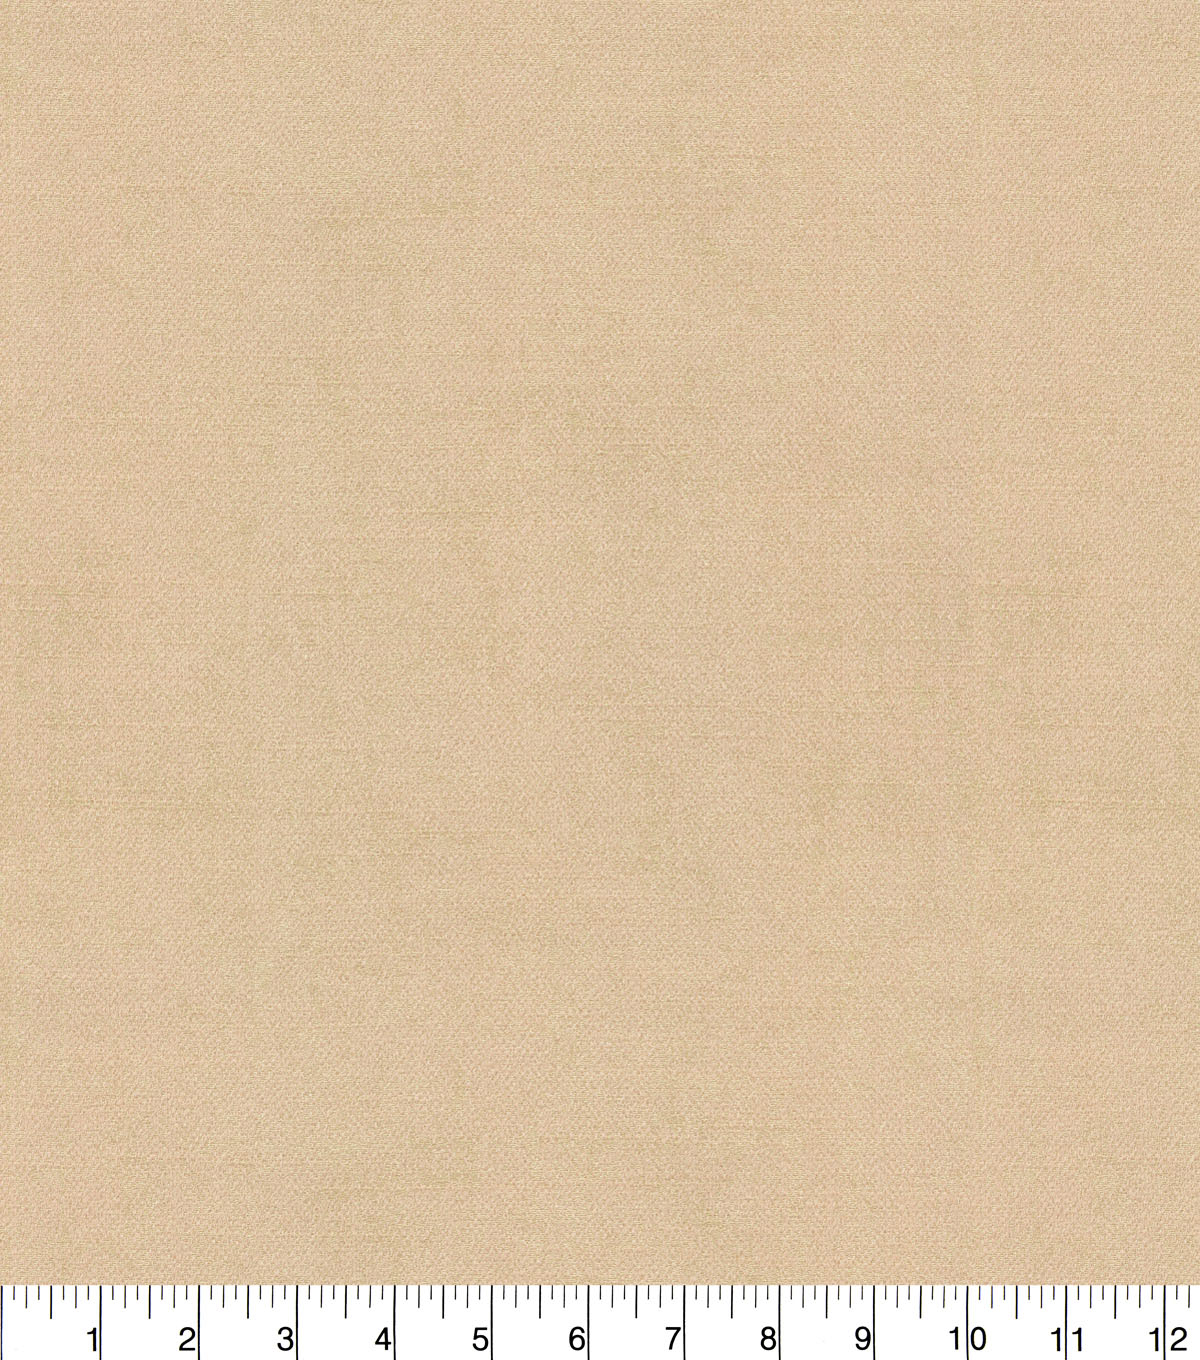 Home Decor 8\u0022x8\u0022 Fabric Swatch-P/K Lifestyles Exposure Gold